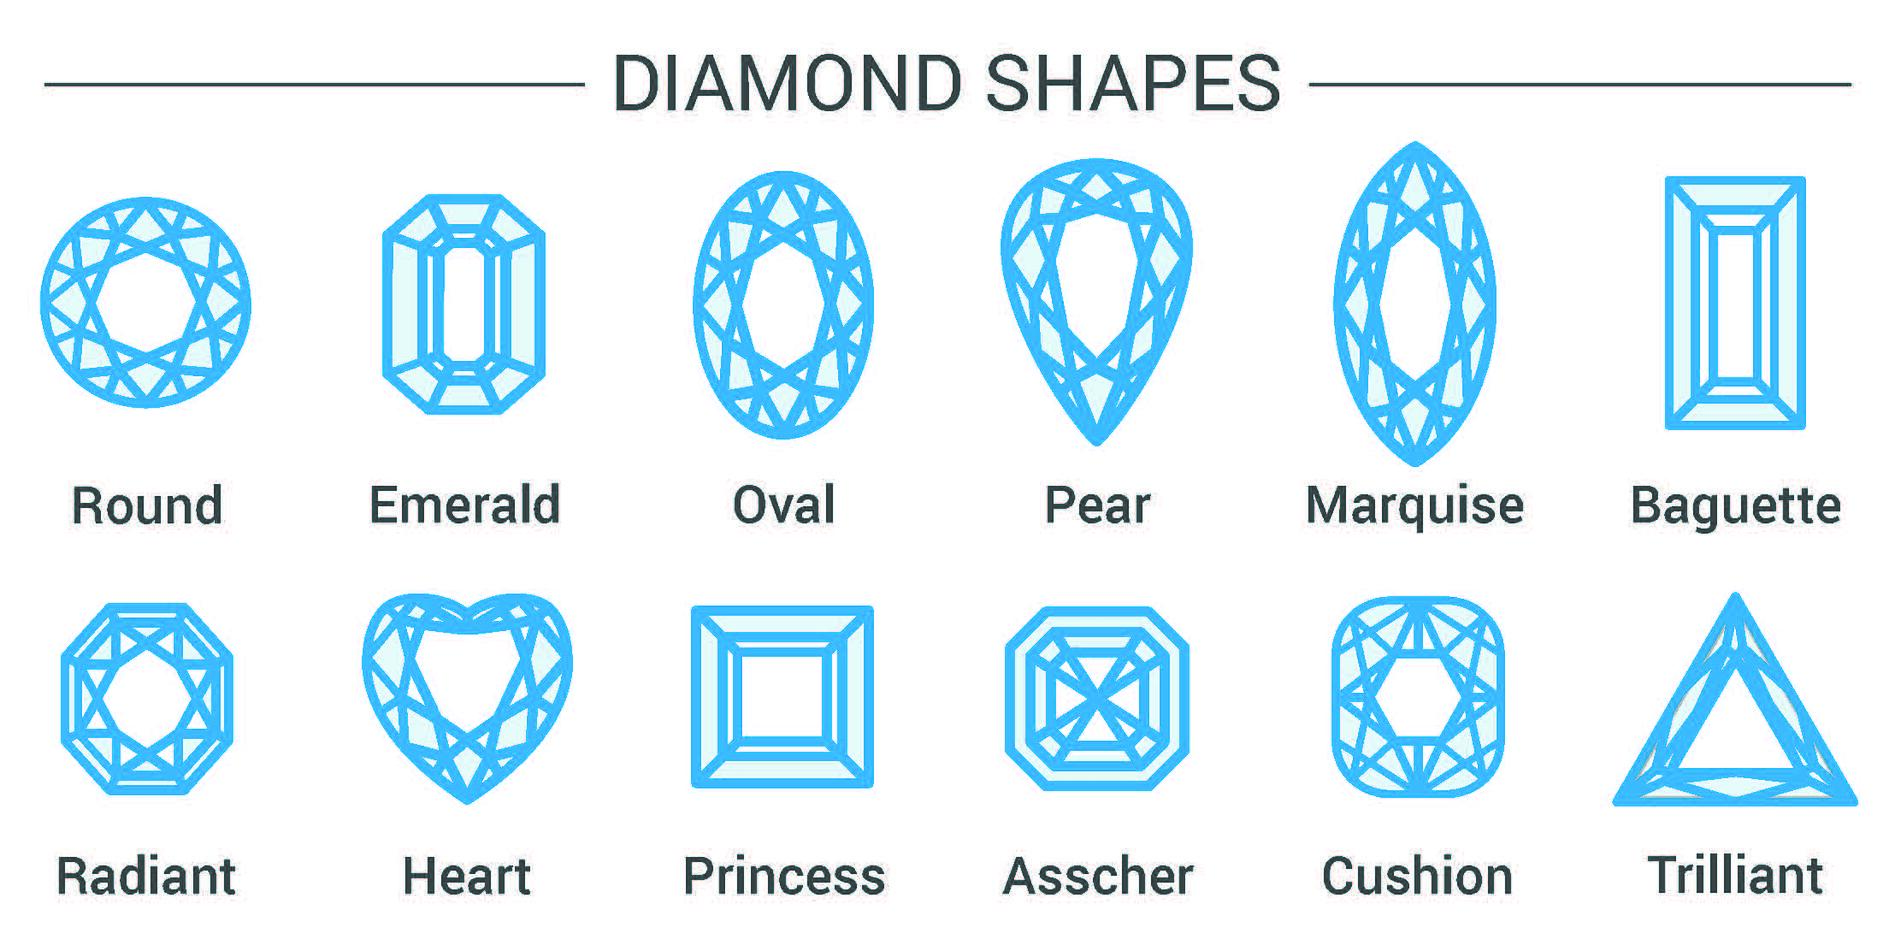 Why Your Diamond Shape Matters